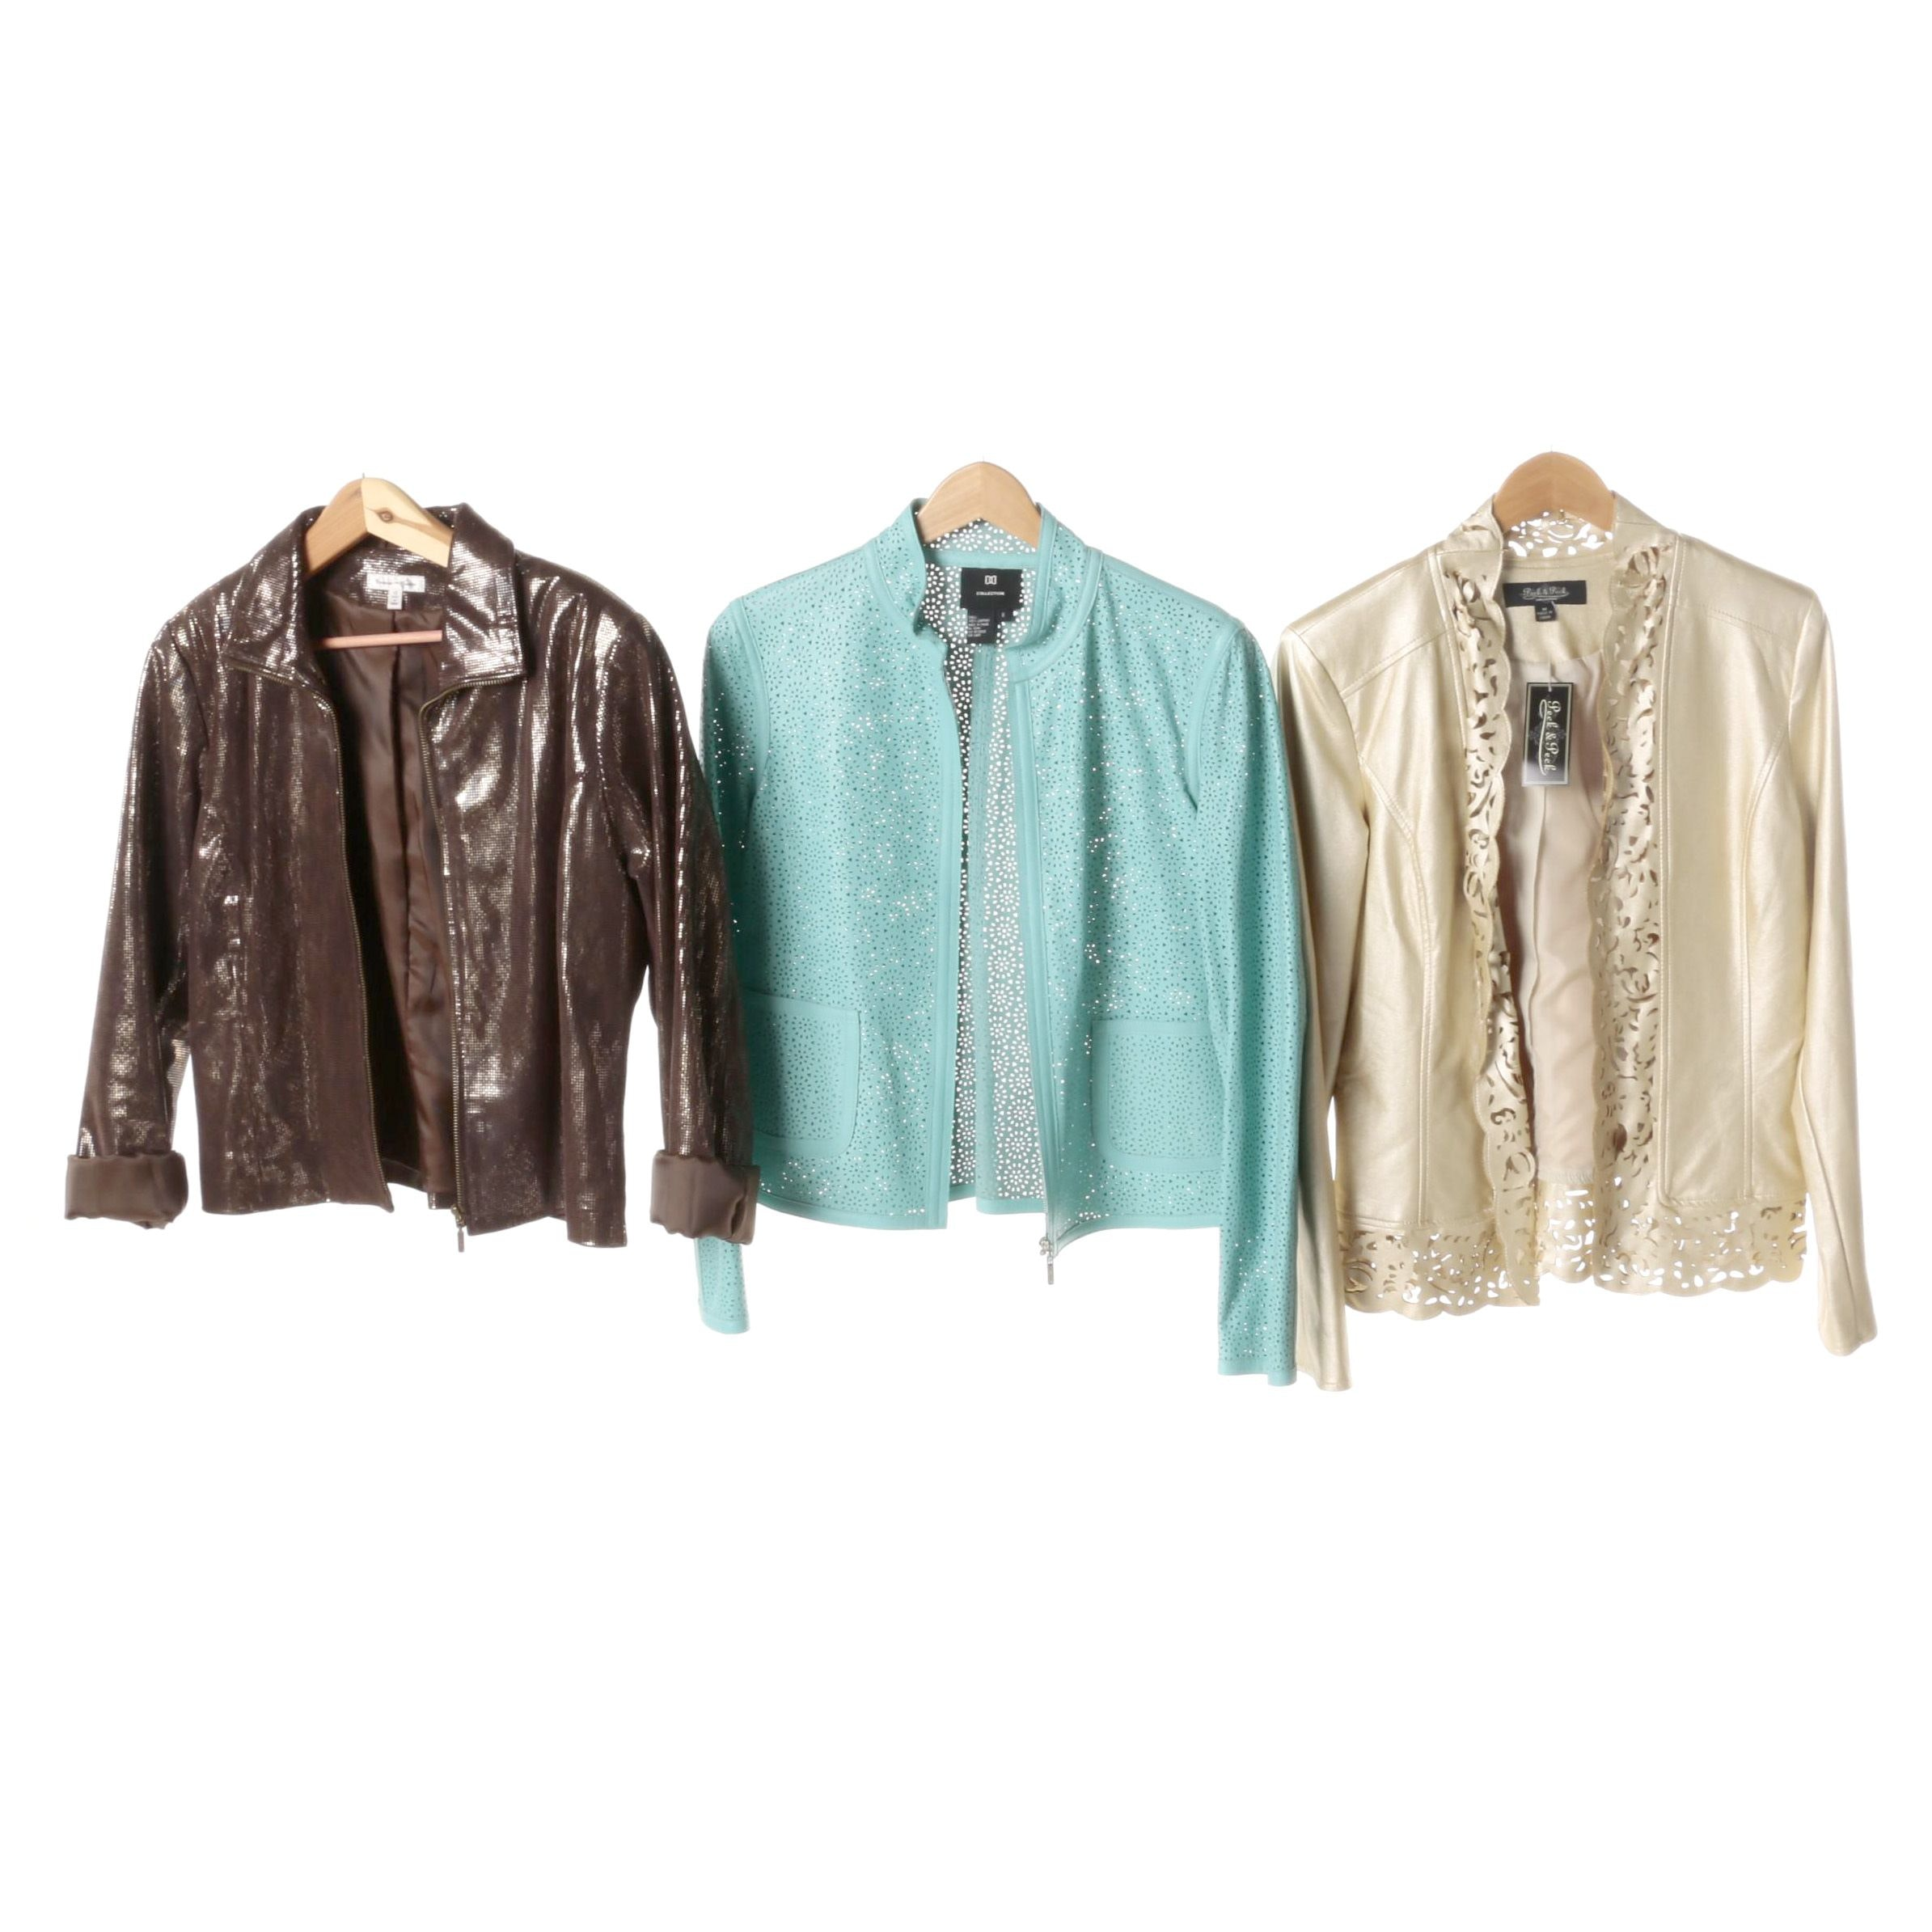 Women's Jackets Including Peck & Peck Collection